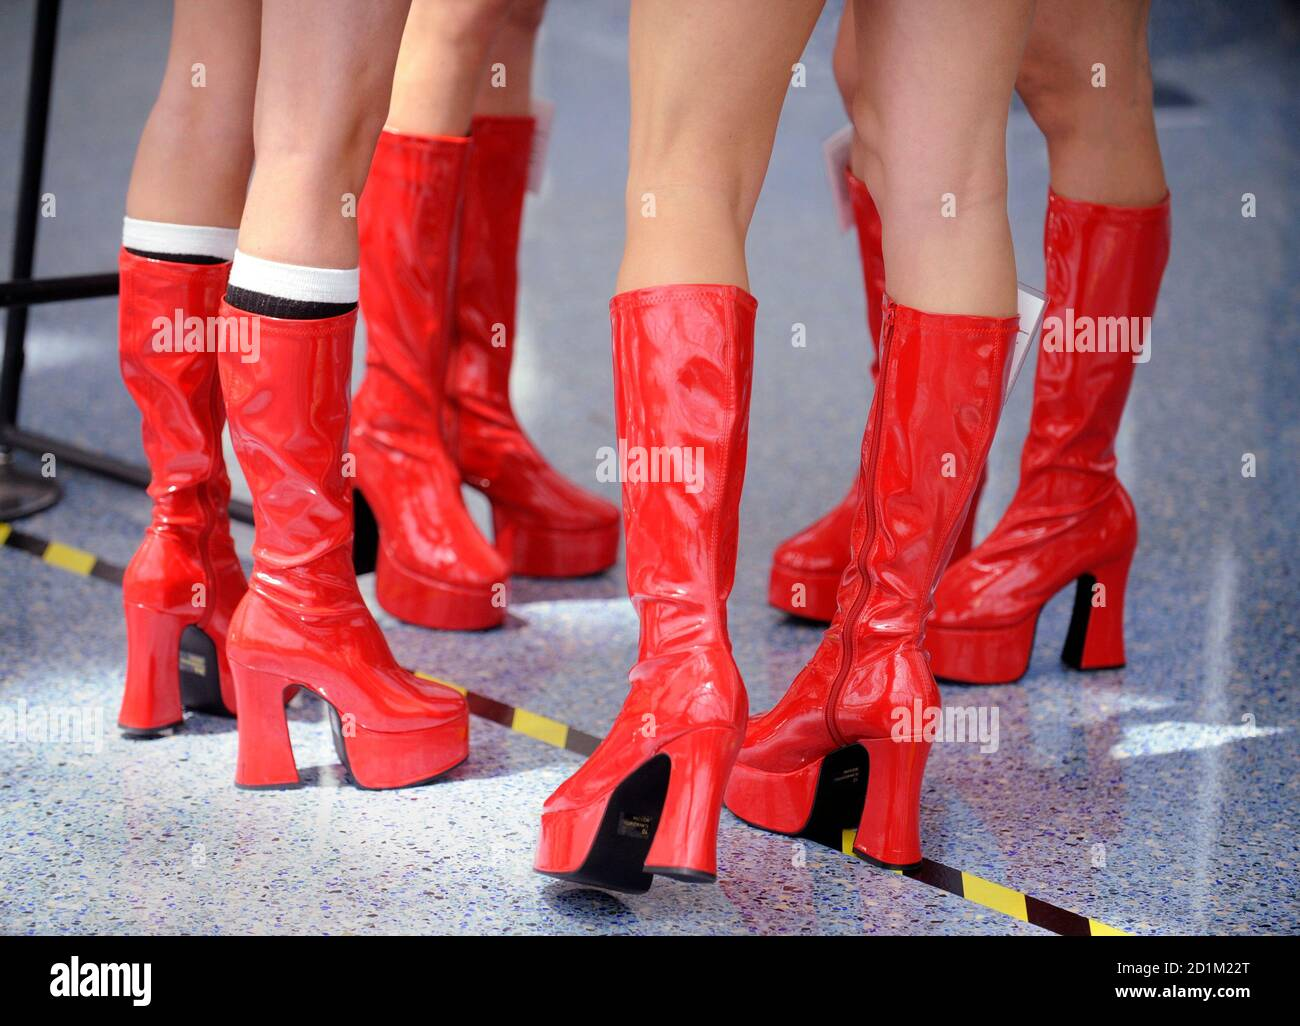 Matching red boots worn by girls promoting Nyko Technologies are seen at the E3 Electronic Entertainment Expo in Los Angeles June 2, 2009.   REUTERS/Phil McCarten  (UNITED STATES ENTERTAINMENT BUSINESS) Foto Stock